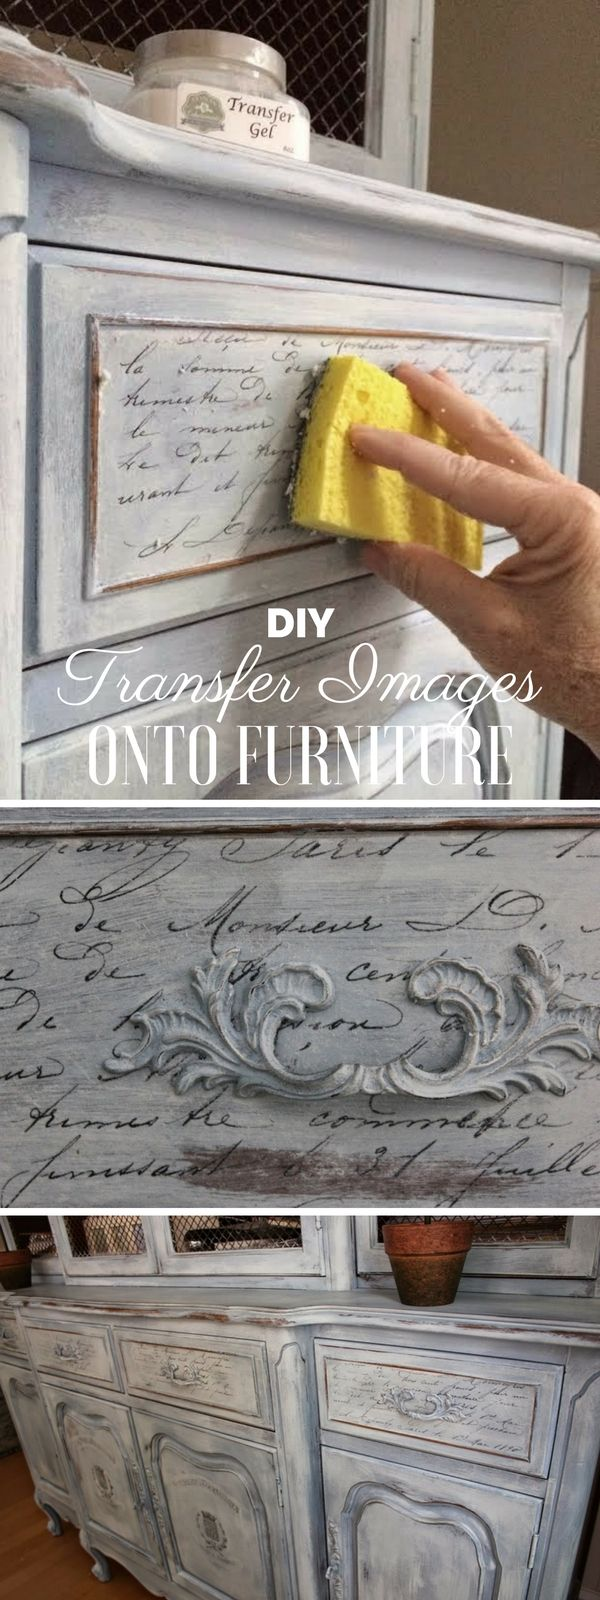 Check out the tutorial: #DIY Transfer Images onto Furniture @istandarddesign